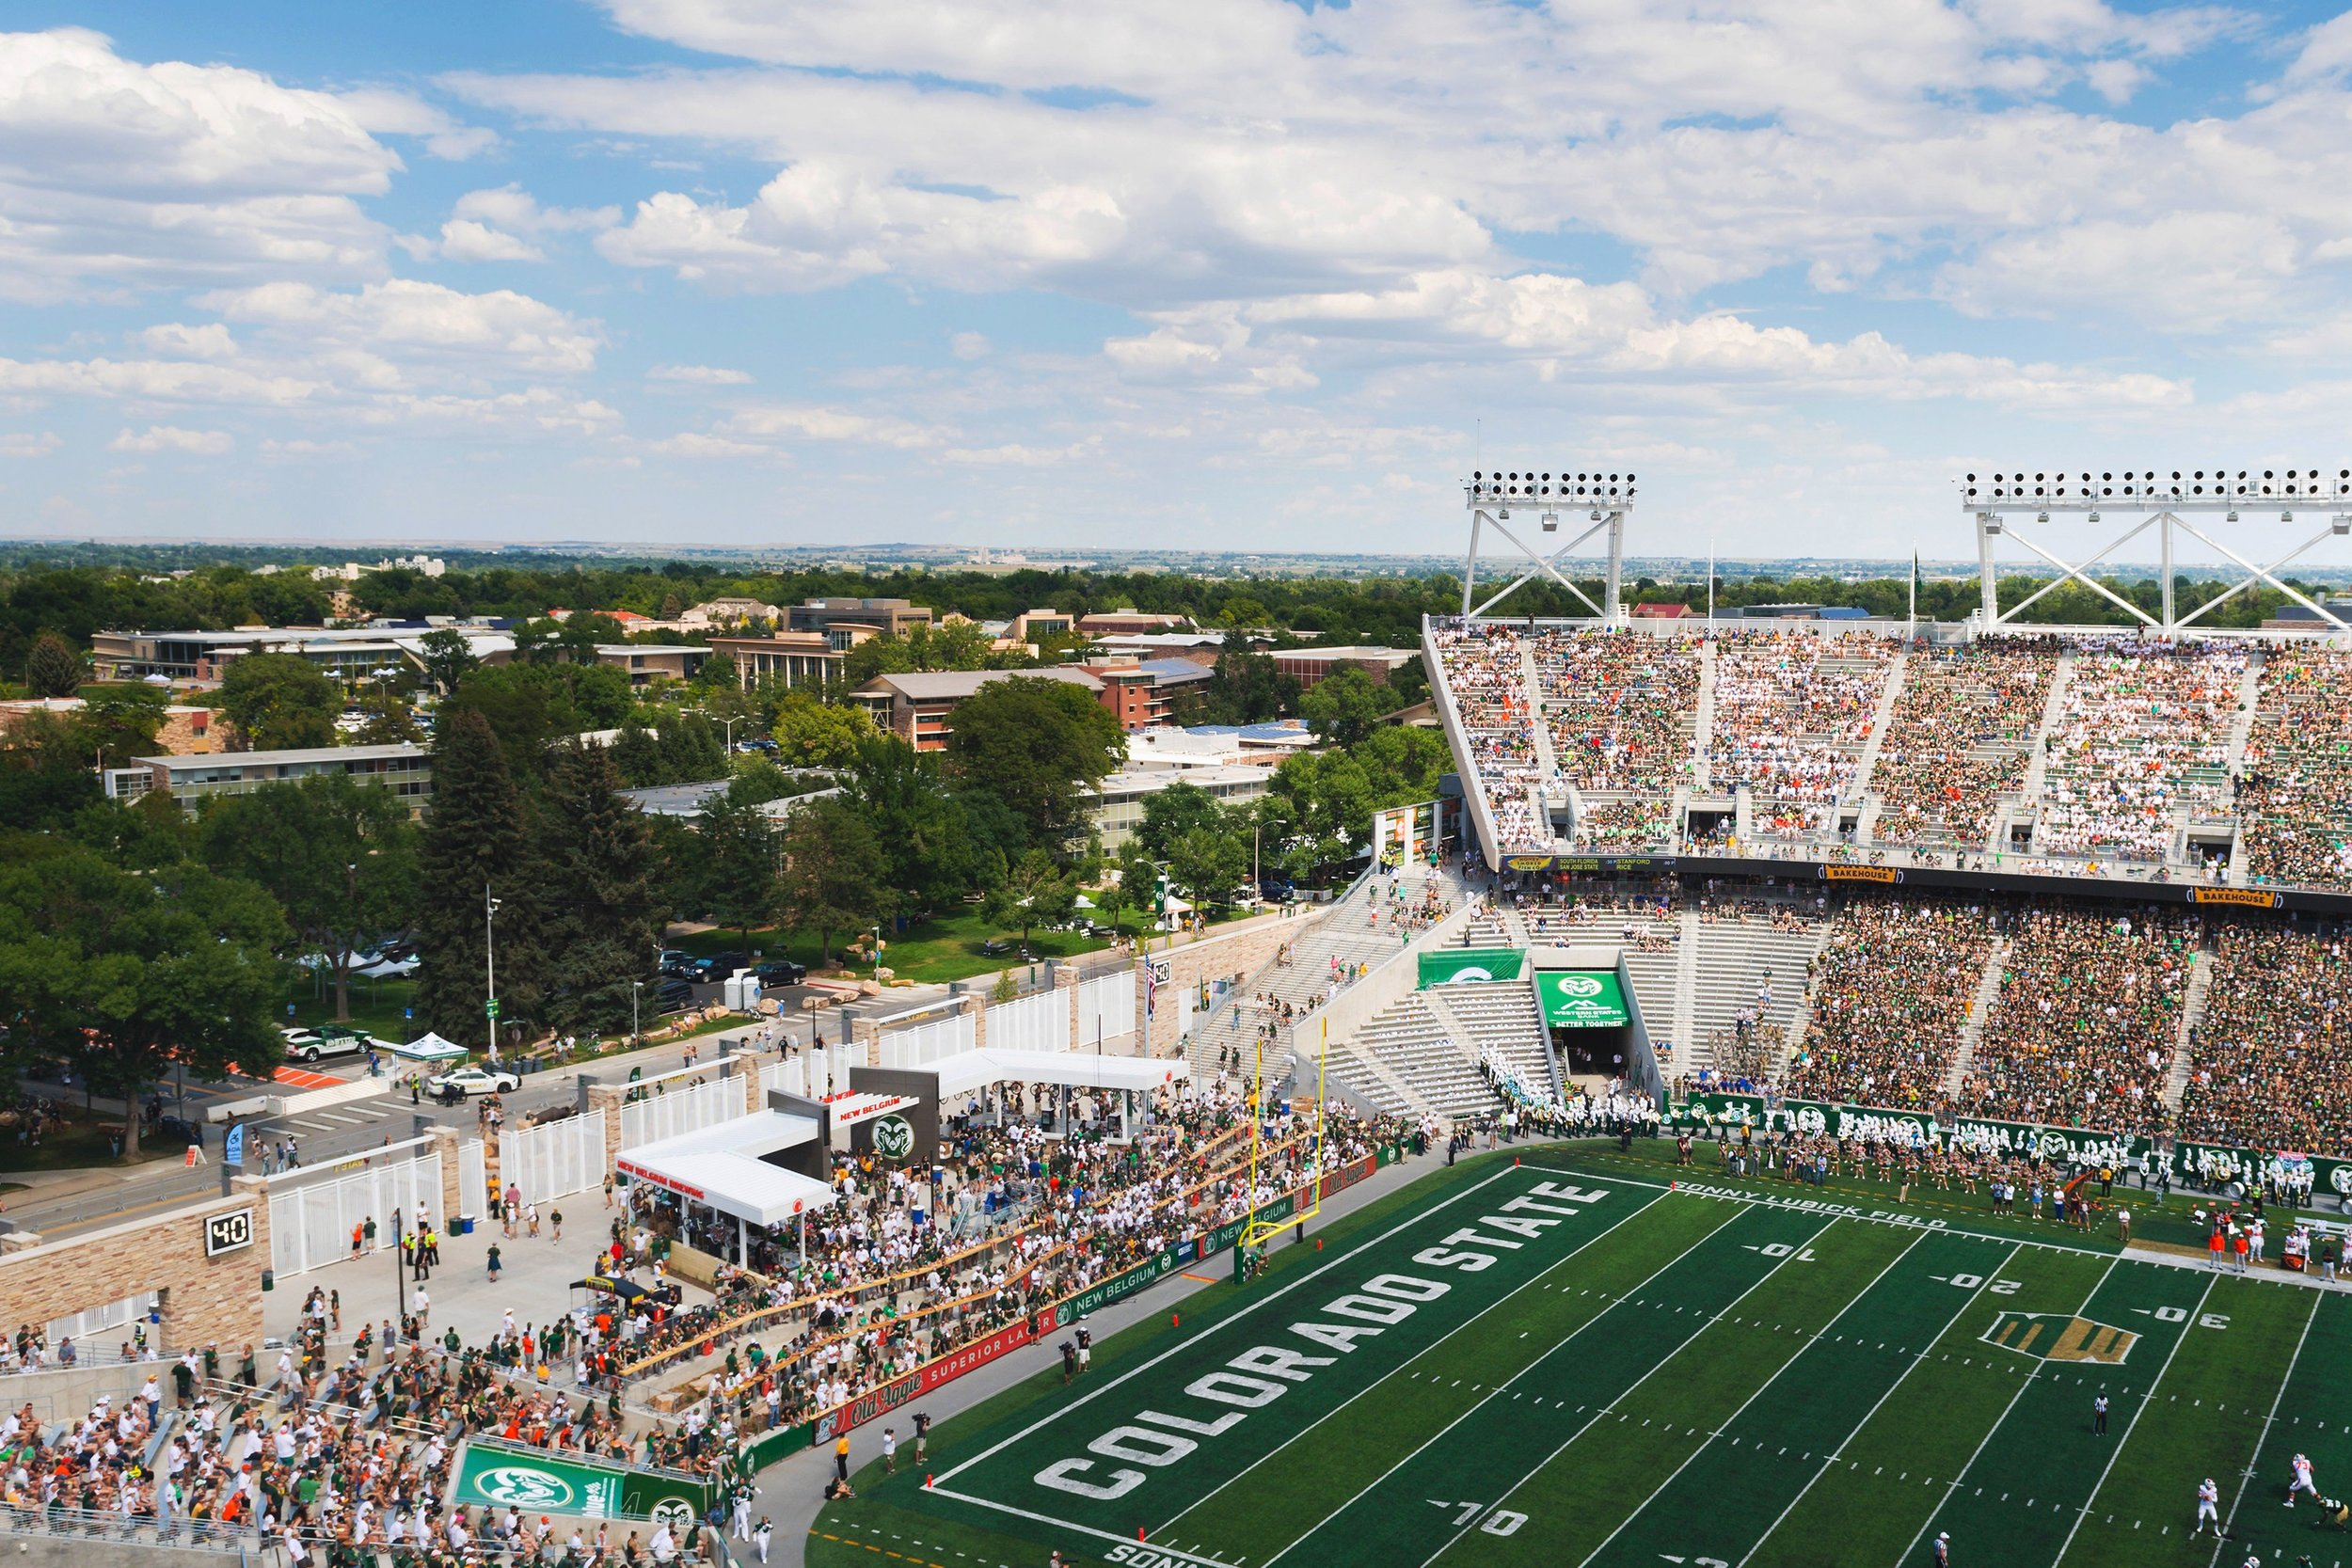 Strategy: - Create a stadium and game day experience that reflects Northern Colorado's values, lifestyle, and culture.